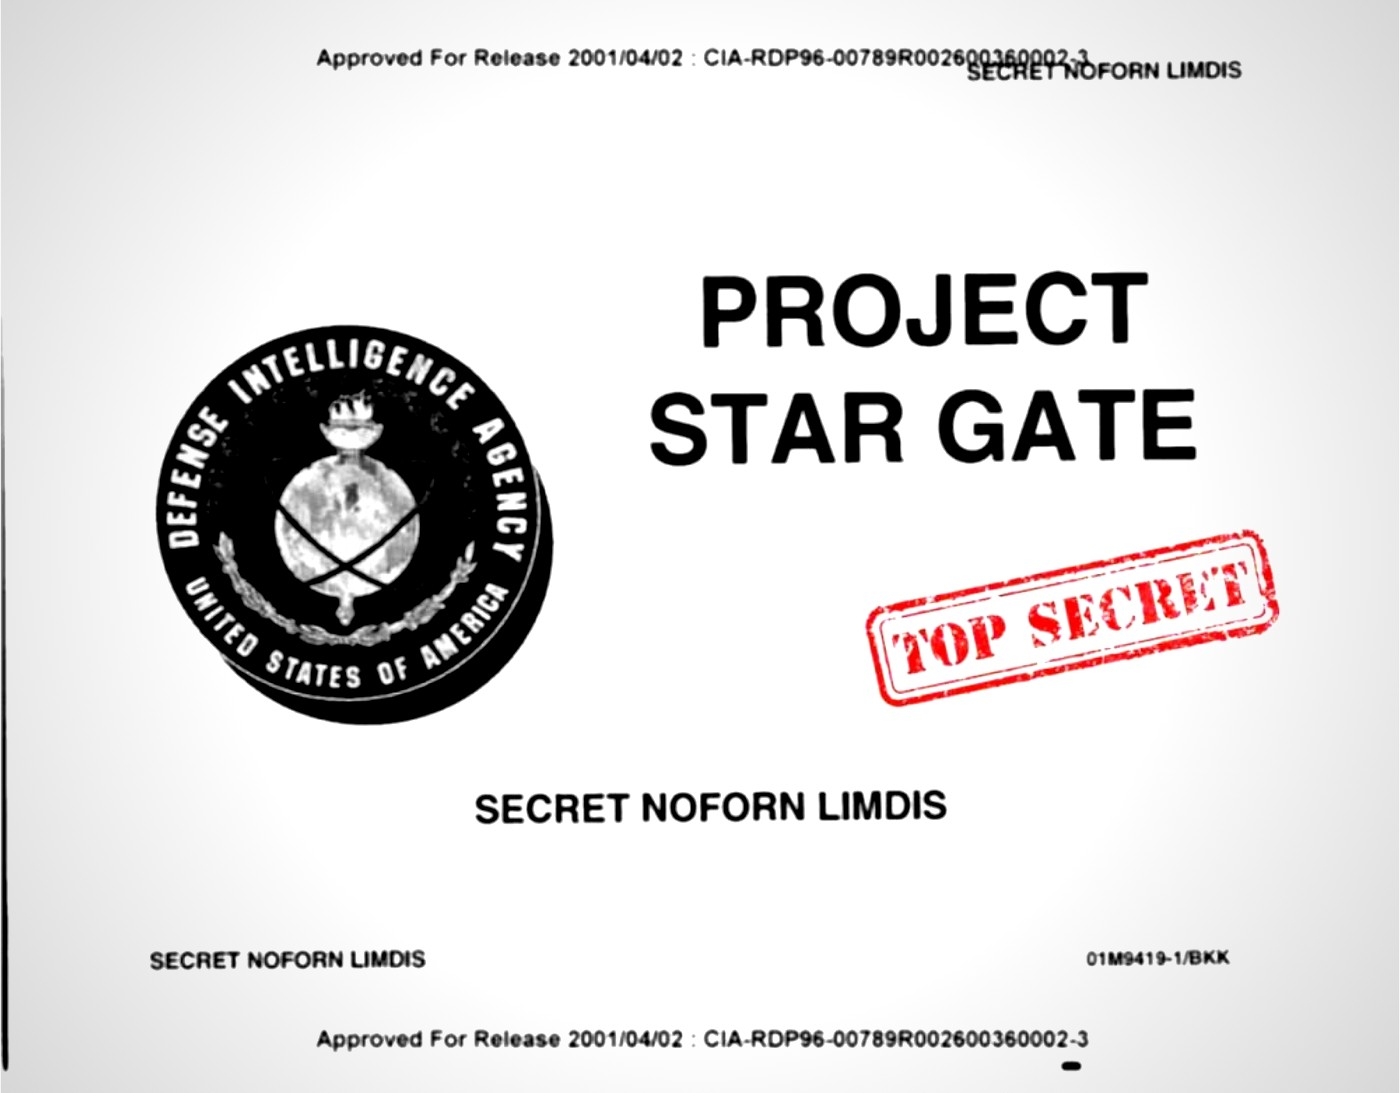 STARGATE: A Timeline of the American Government's Secret Psychic Program |  by Monad Mantis | Remote Viewing Community Magazine | Medium